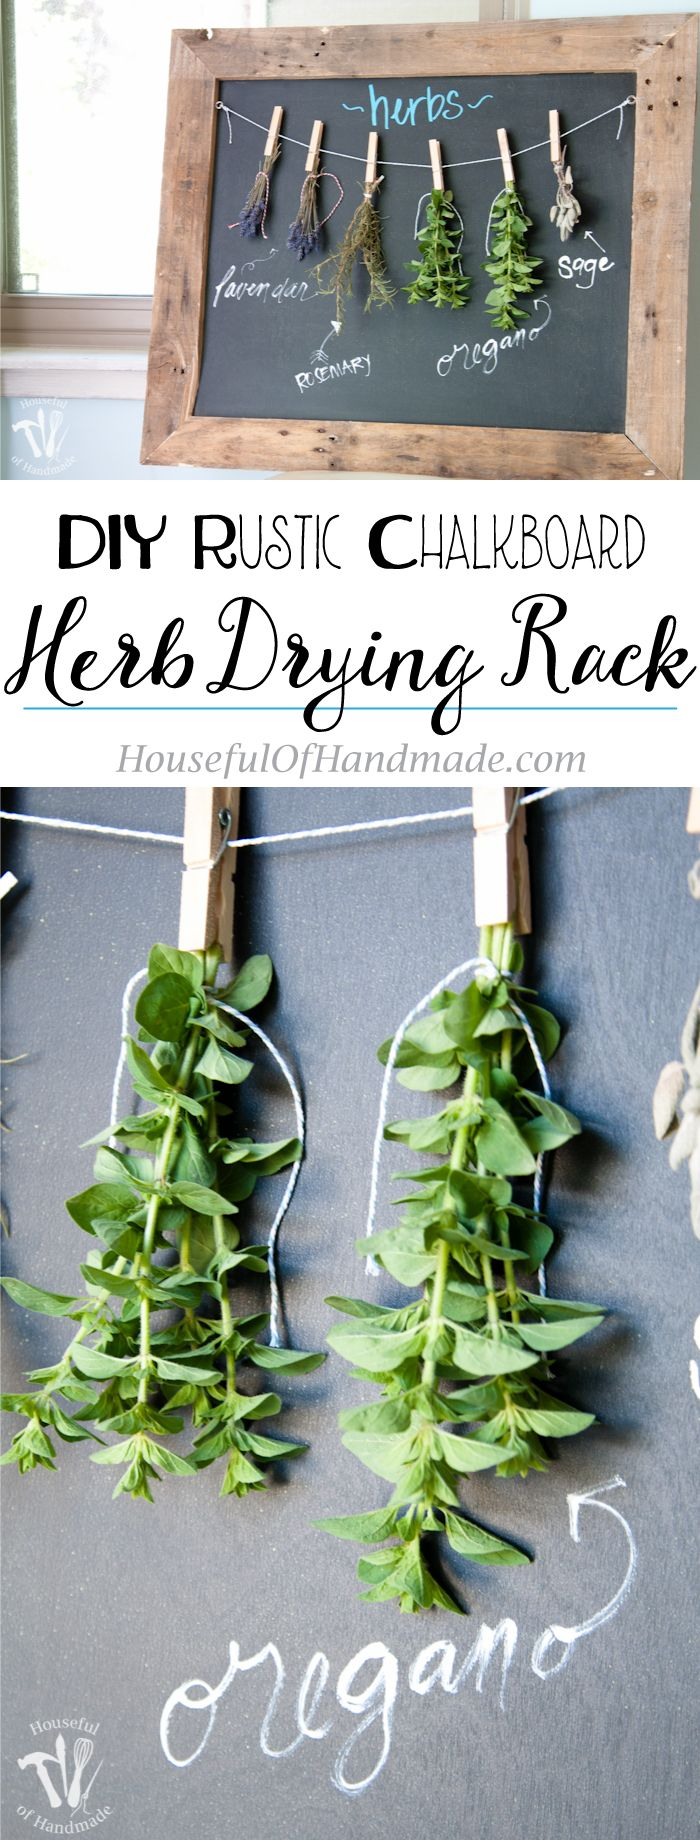 Make drying your herbs a part of your decor with this DIY rustic chalkboard herb drying rack. It's made from an old pallet and makes preserving herbs beautiful. | Housefulofhandmade.com